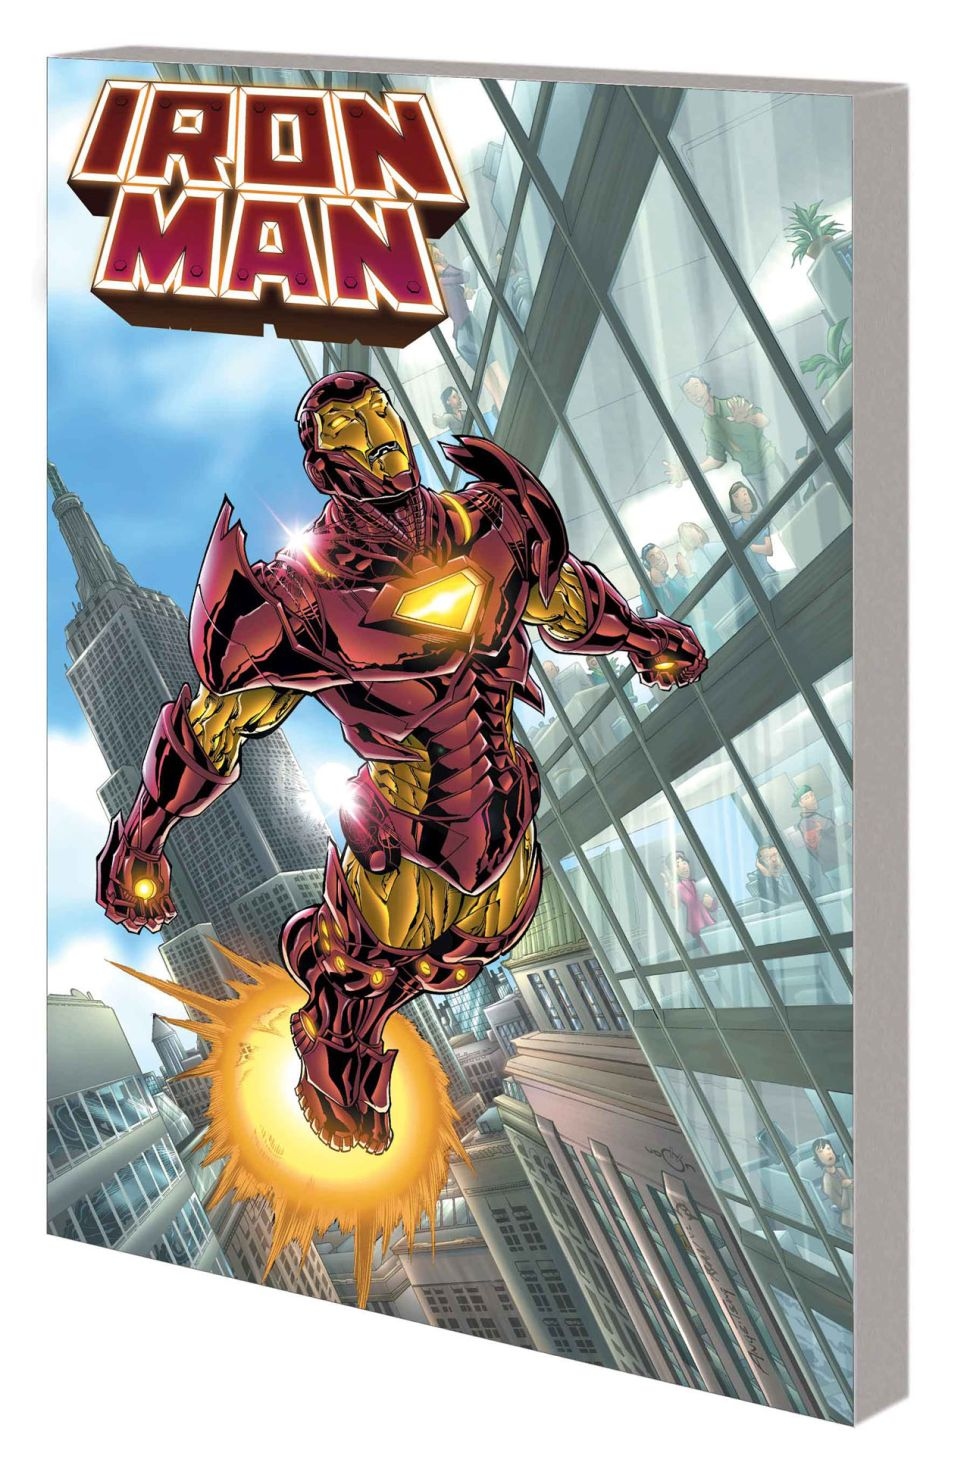 Marvel Comics & April 2021 Solicitations Spoilers: Comic Book Icon Mike Grell's Iron Man Run For A New Generation!